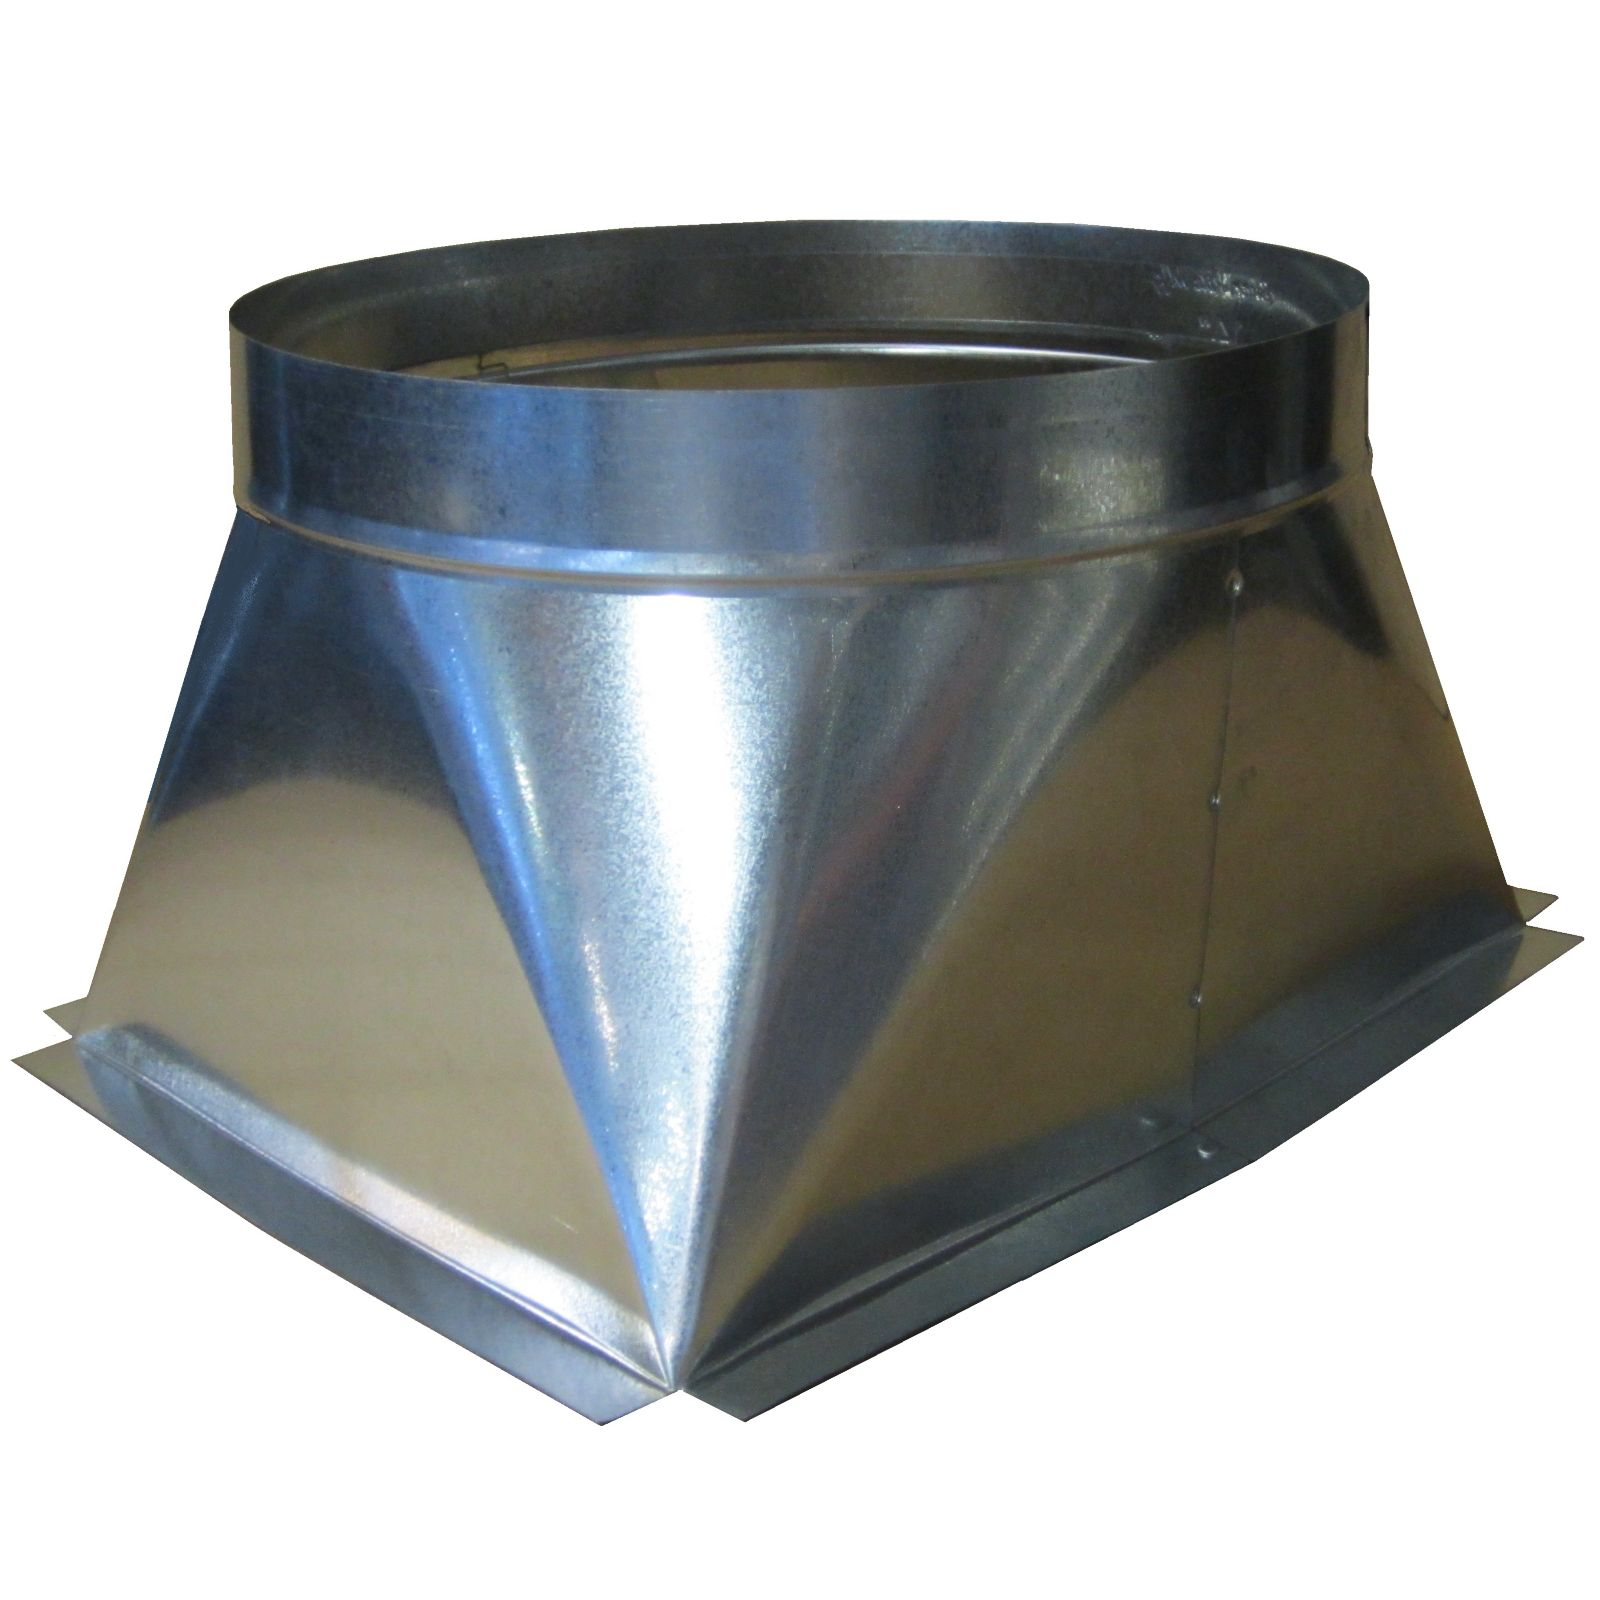 "Snap-Rite 20X20687518331F - Square to Round Transition, 20"" x 20 11/16"" x 18"" with 1/2"" Flange"